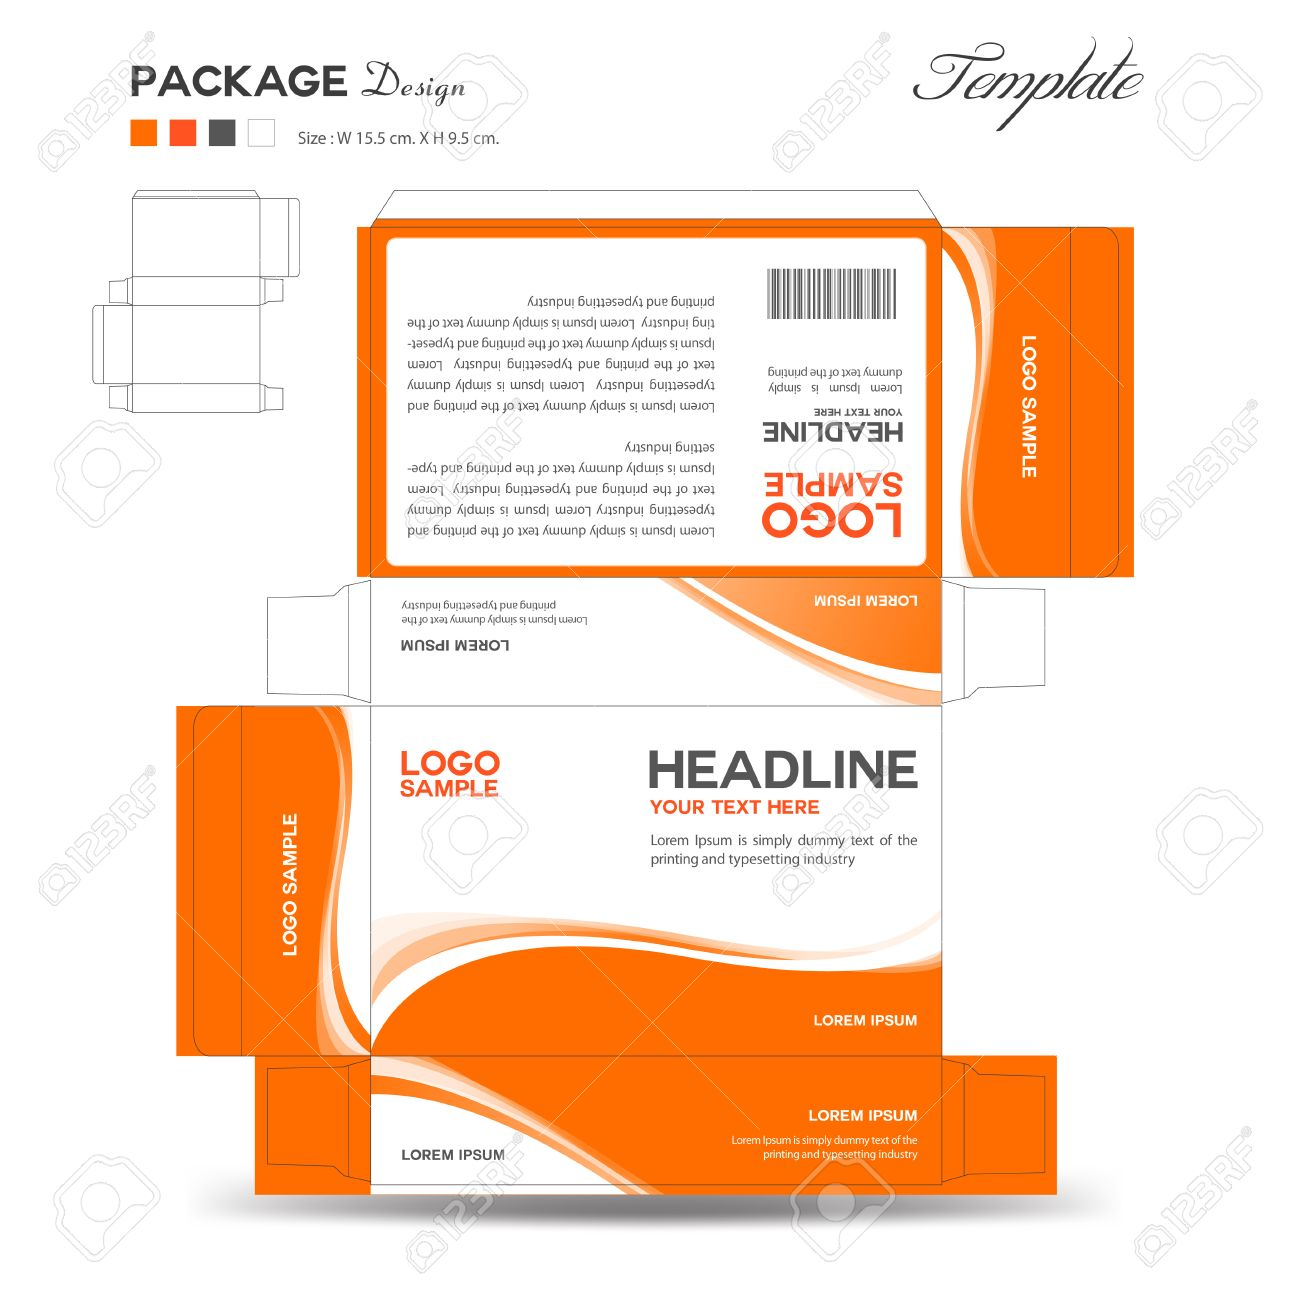 Supplements And Cosmetic Box Design Package Design Template Box